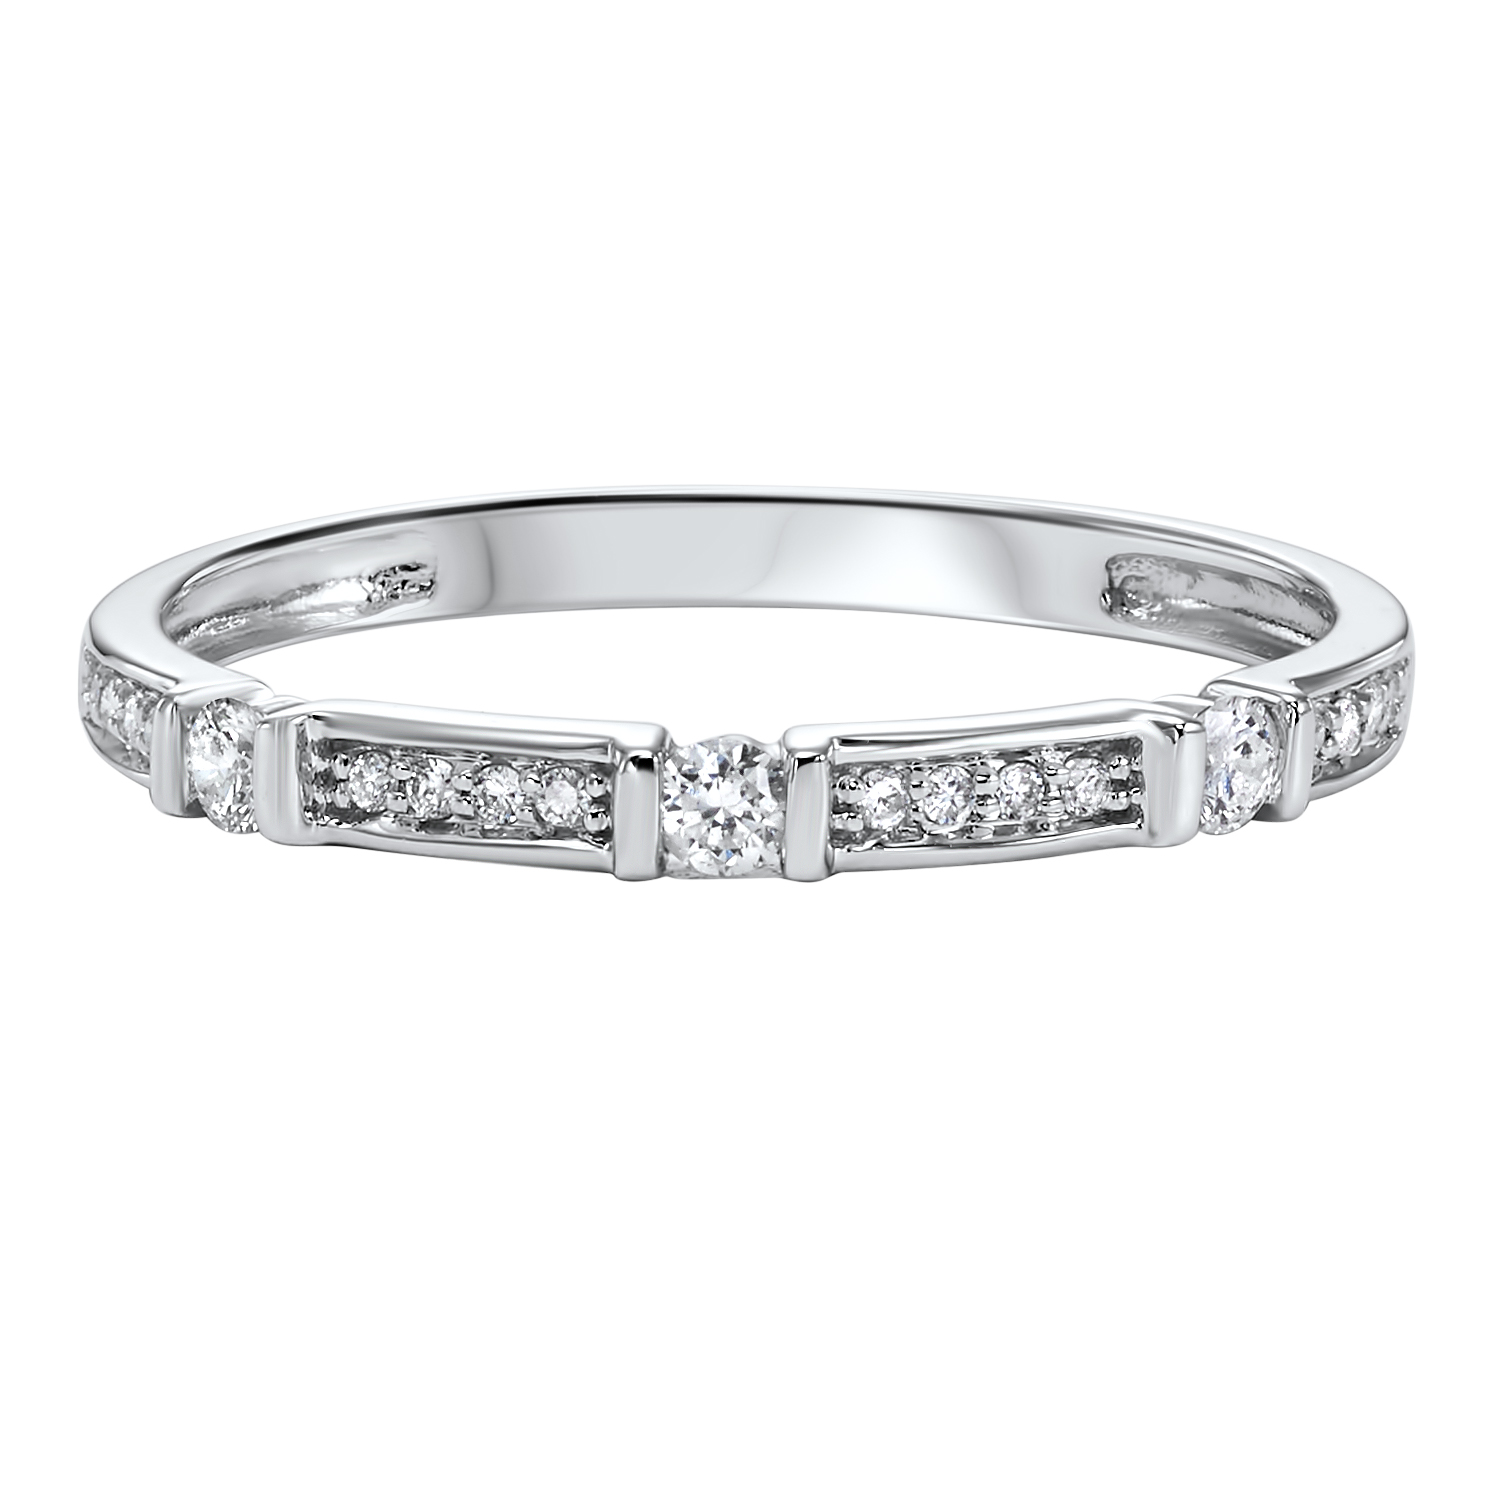 14K White Gold Stackable Prong Diamond Band (1/6 ct. tw.) Moseley Diamond Showcase Inc Columbia, SC